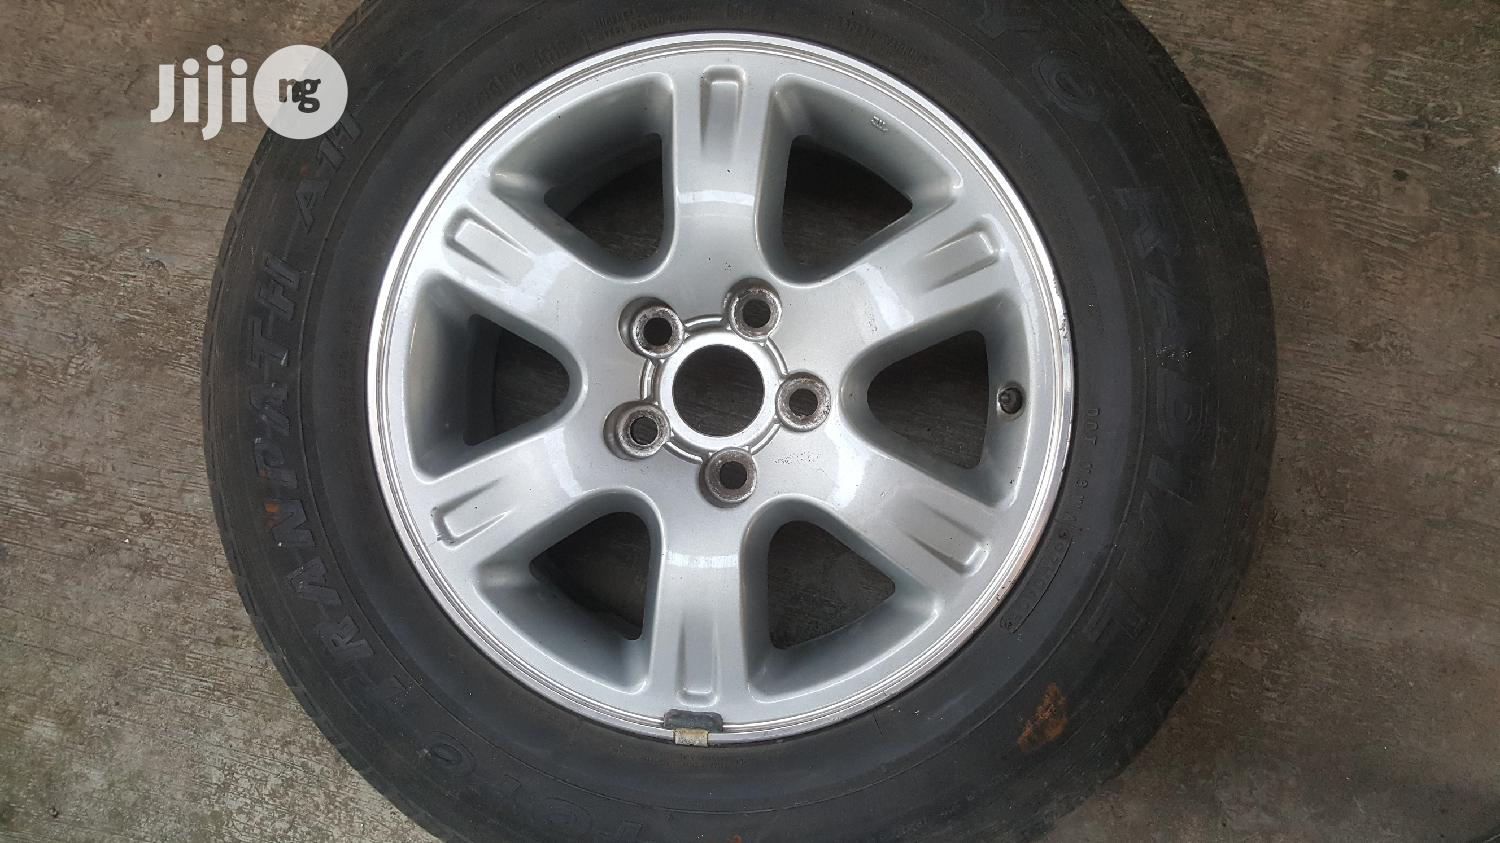 Brand New 16inch Alloy RIM (Toyota) | Vehicle Parts & Accessories for sale in Yaba, Lagos State, Nigeria